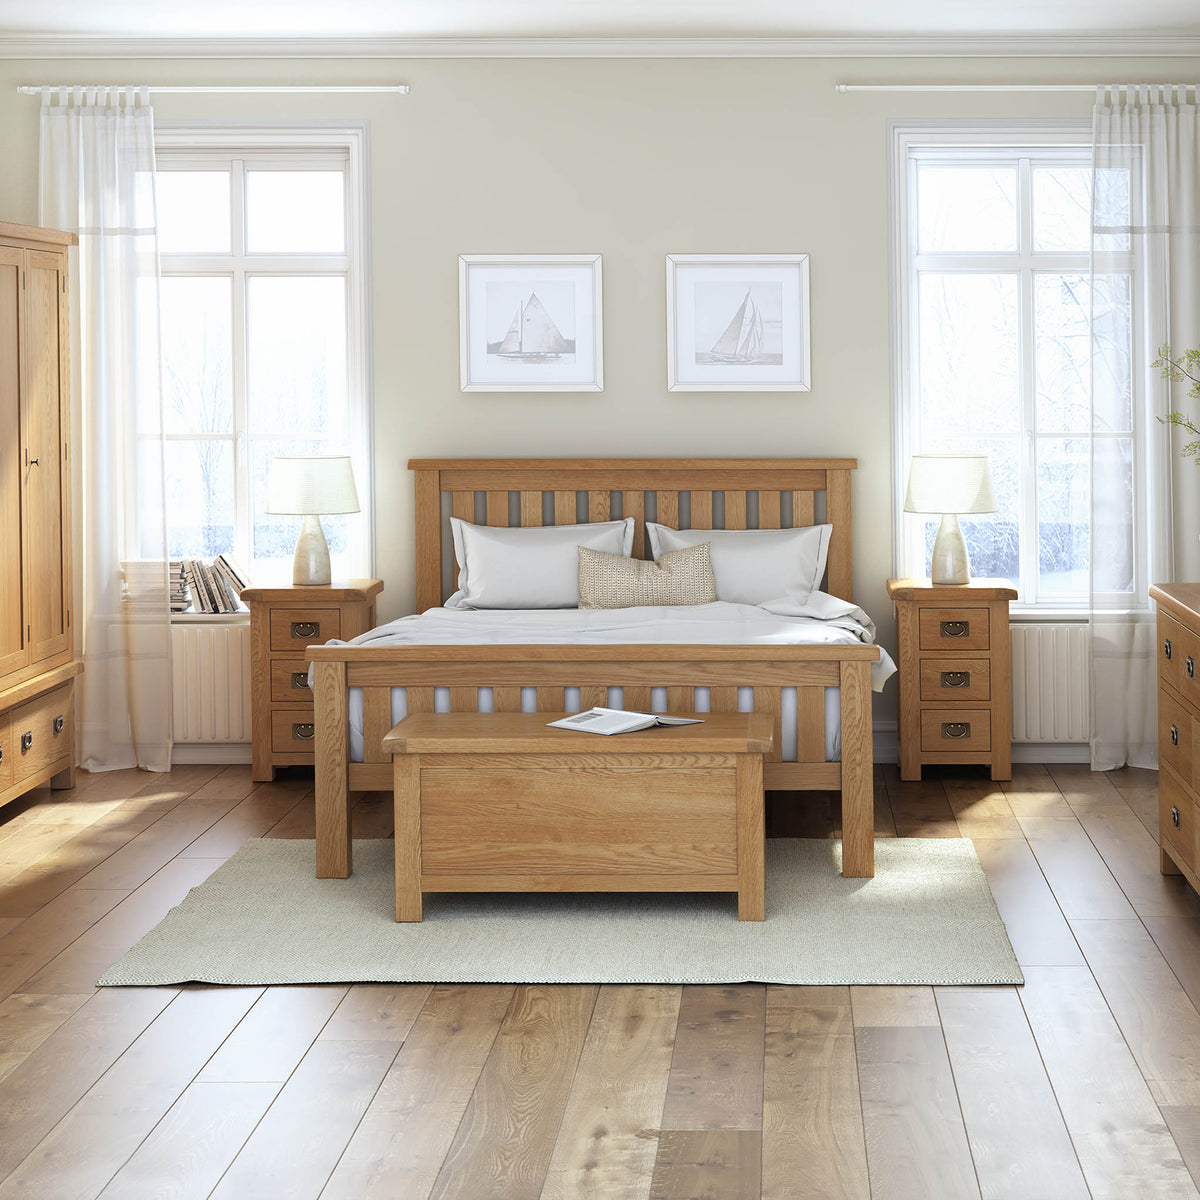 Zelah Oak 4'6 Slatted Bed - Lifestyle